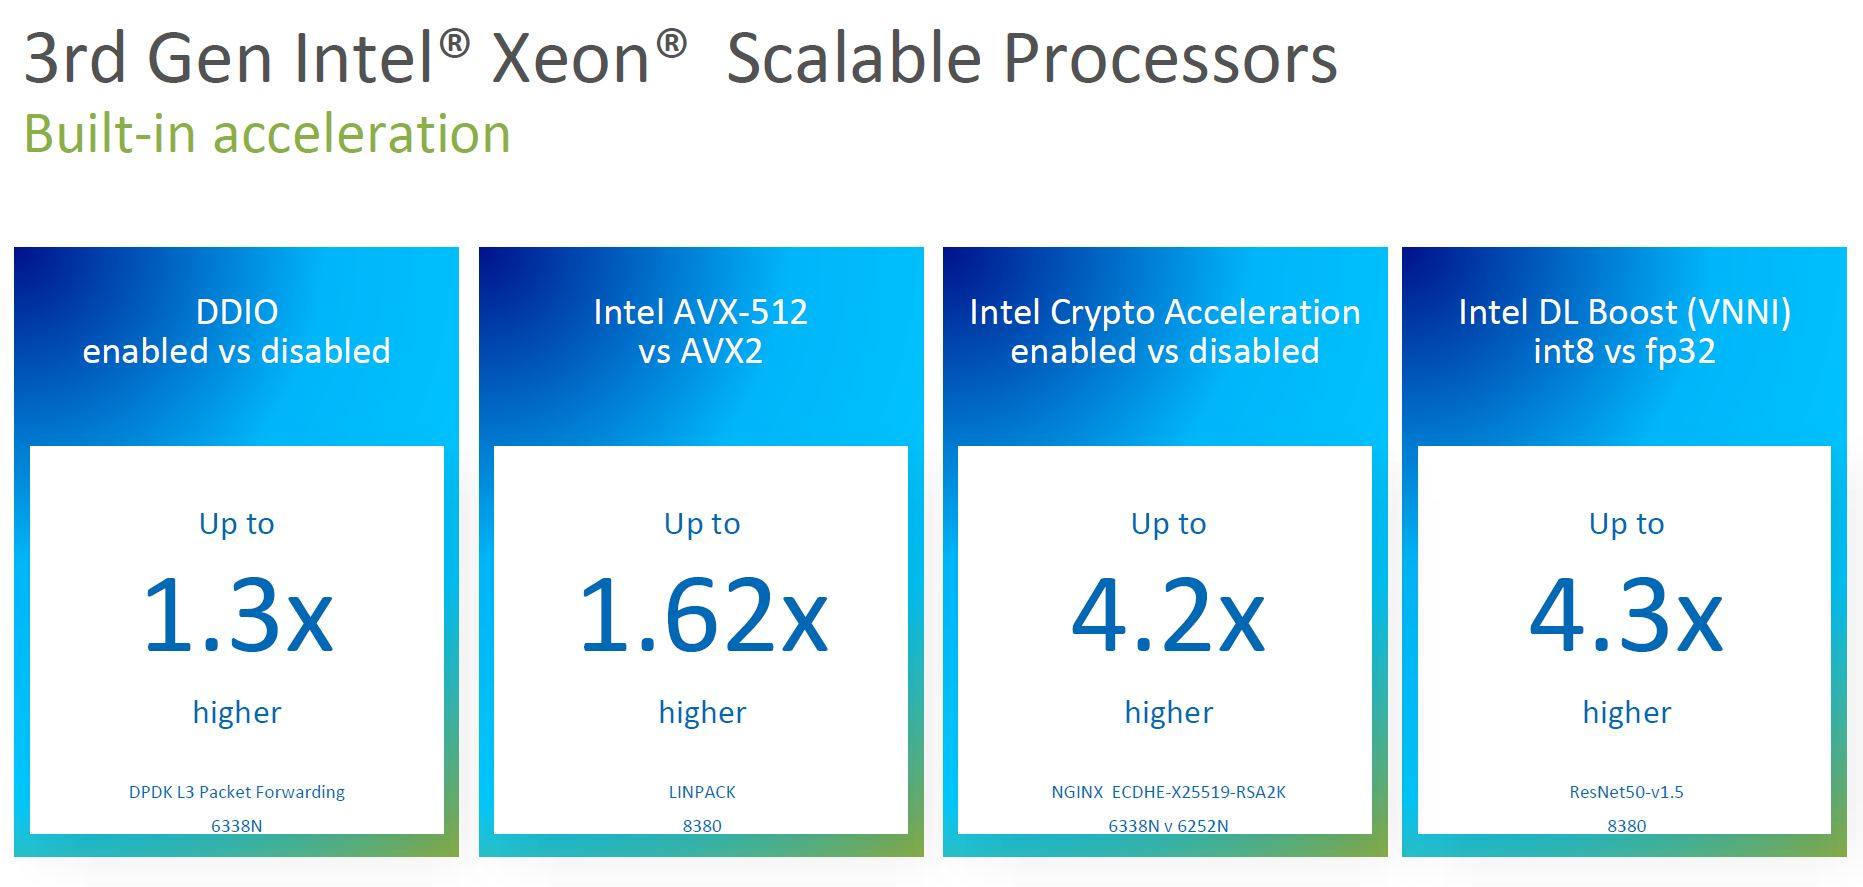 3rd Generation Intel Xeon Scalable Ice Lake Acceleration